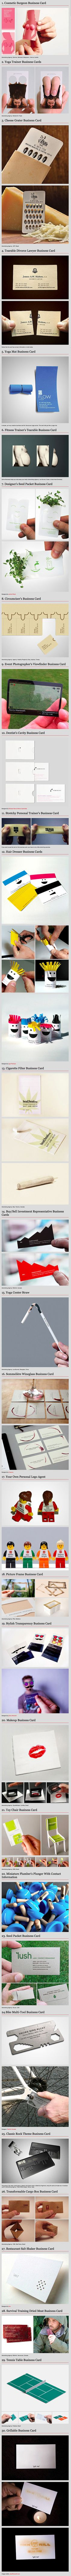 A good business card definitely won't ensure your success, but it sure can help! It can make all the difference in the first impression that you have on someone, or whether or not you leave an impression at all, so here are 30 cleverly-designed business cards that will get you thinking about how you might want to present yourself!